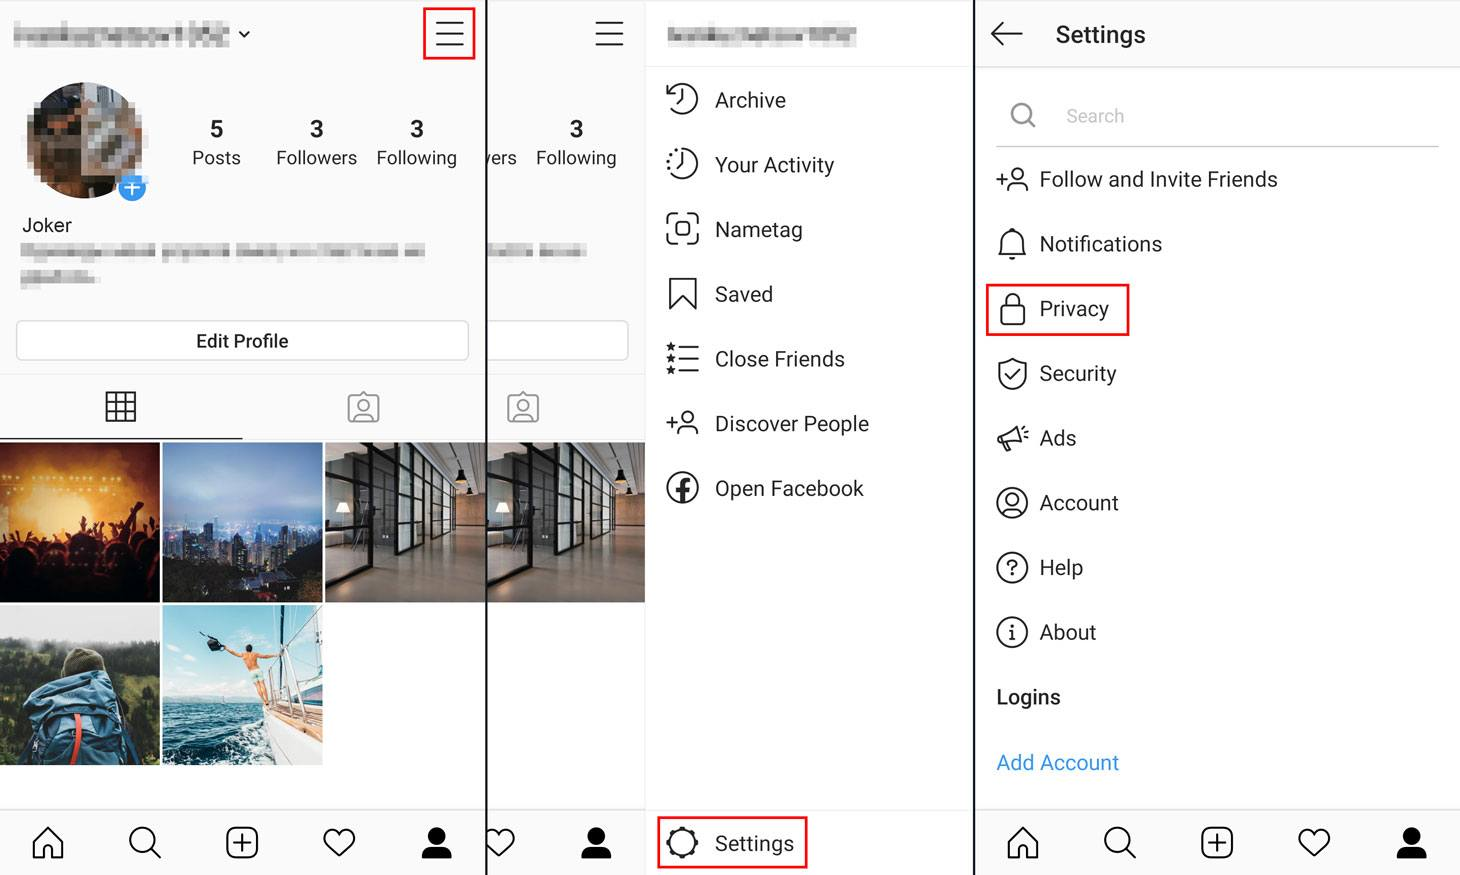 Where to find privacy settings in the Instagram app